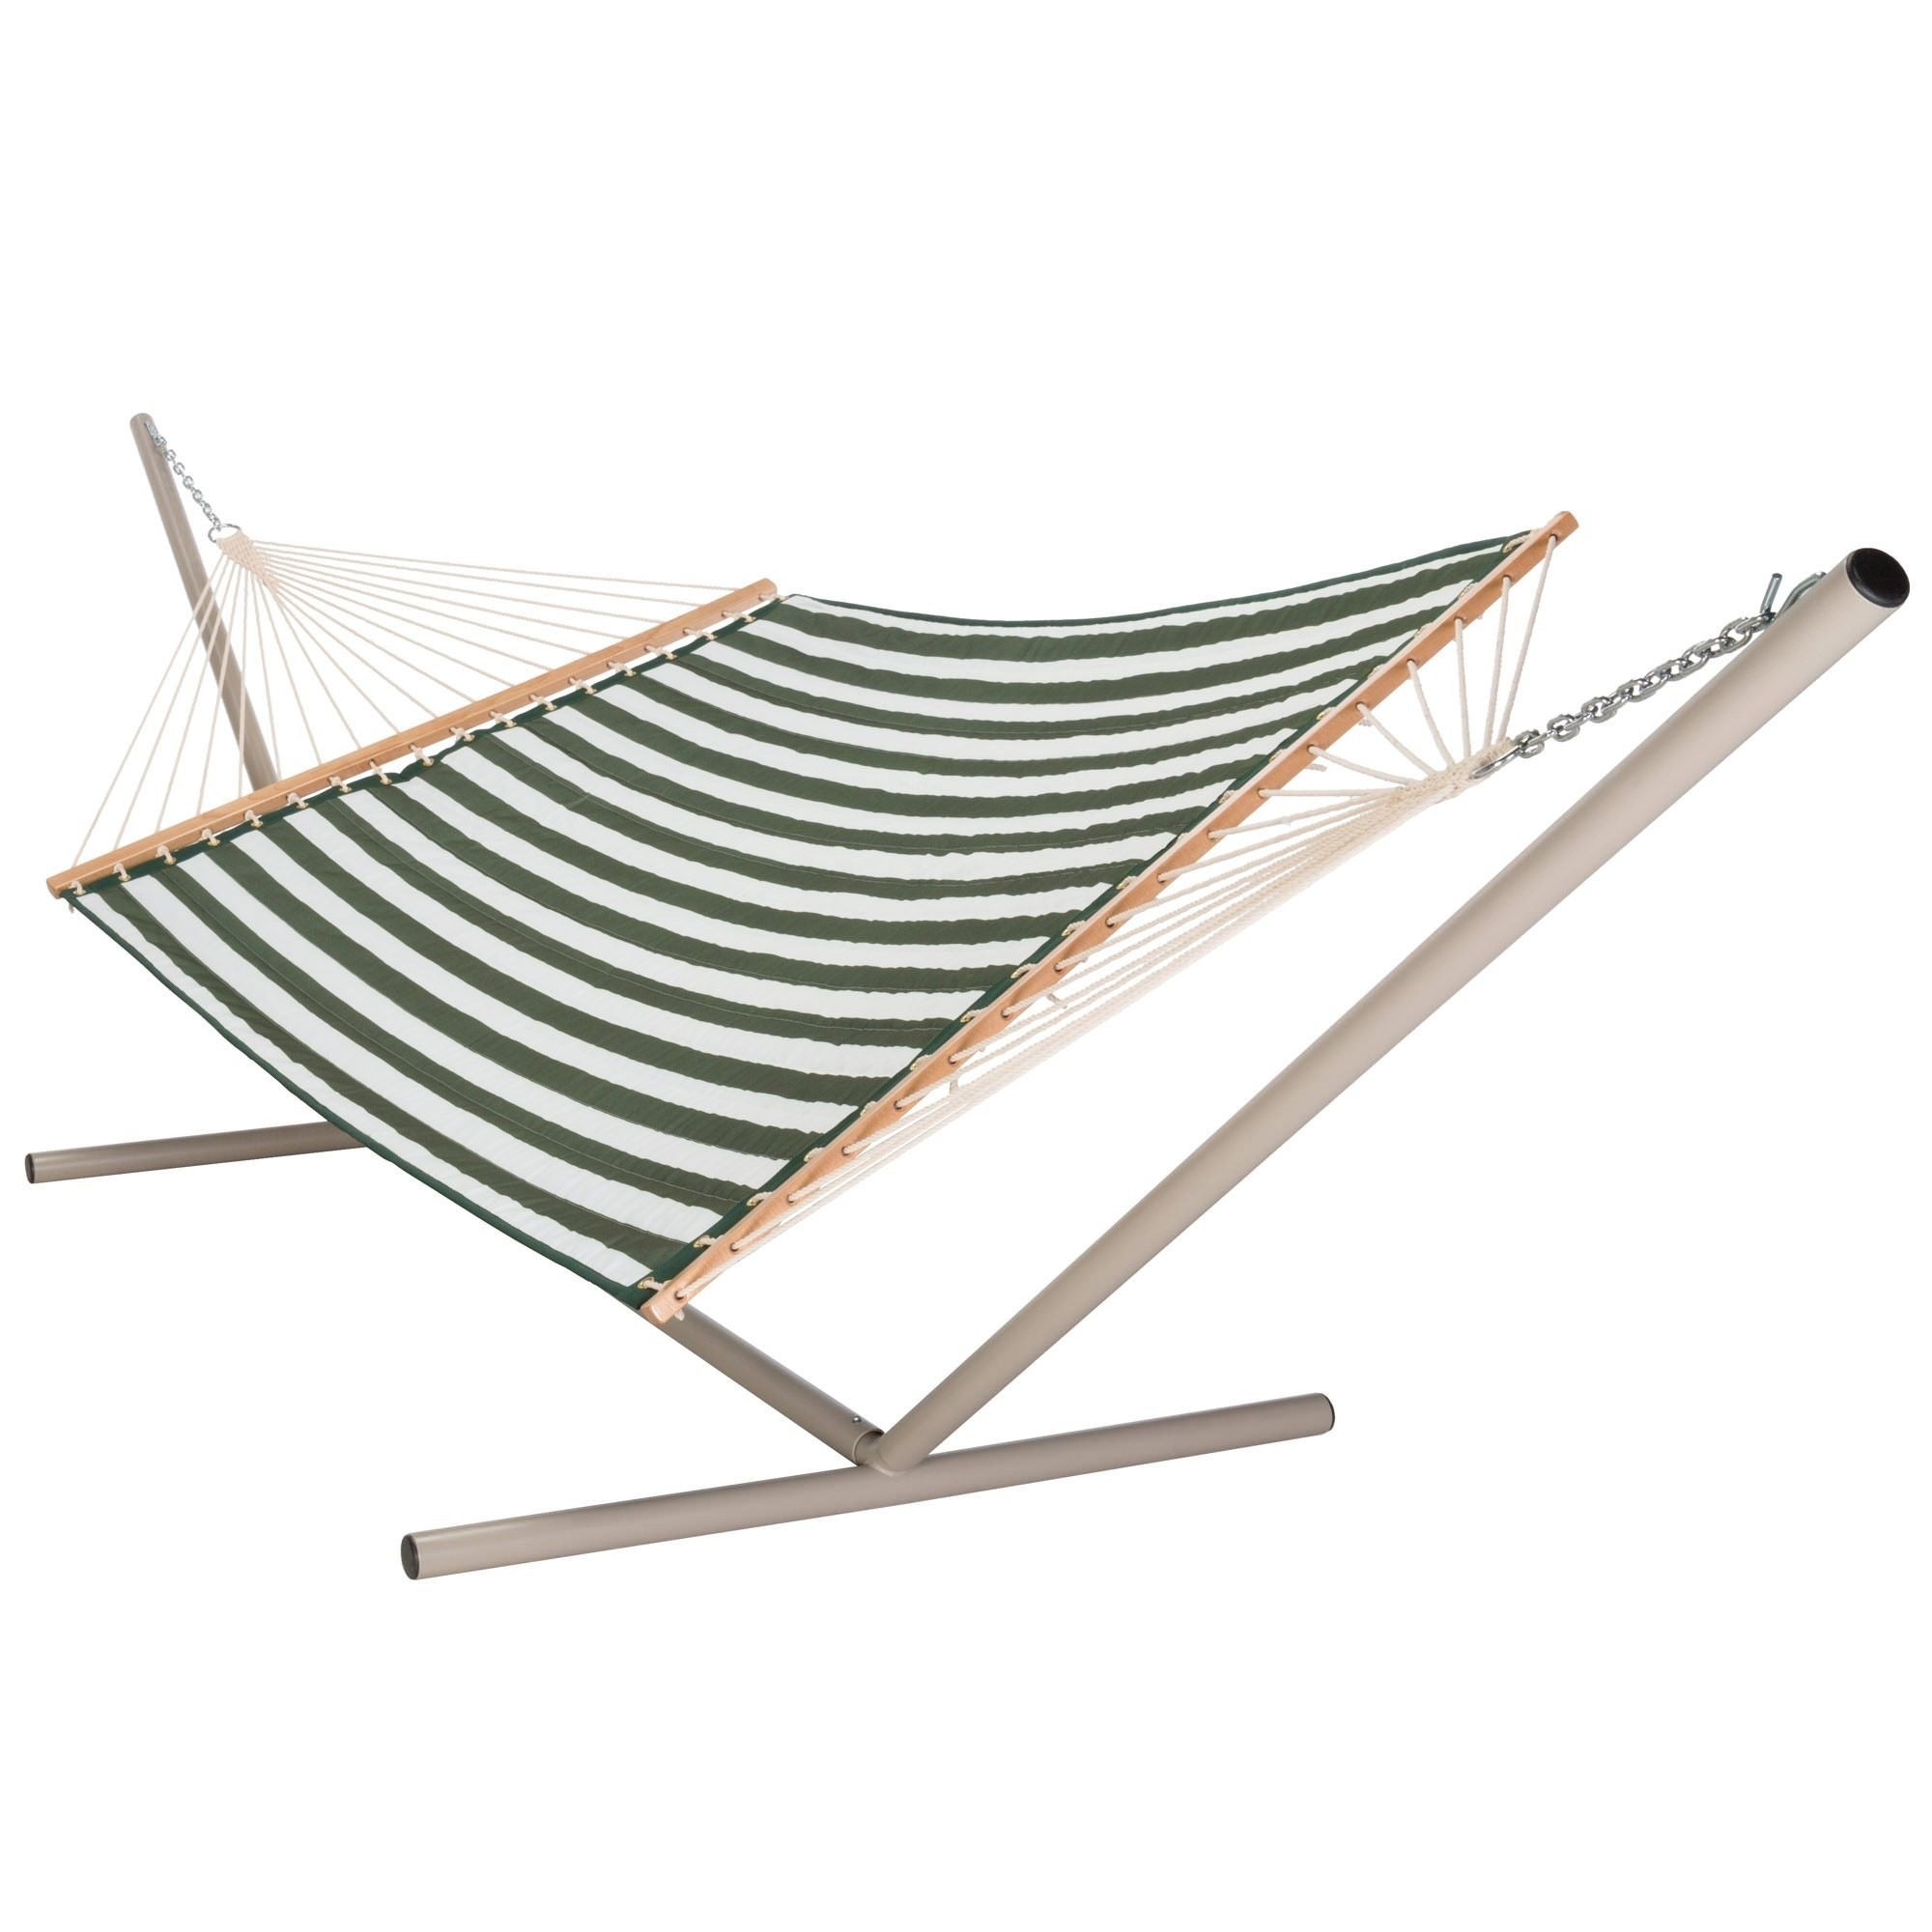 stand pin comfort in standing garden patio brazilian your free with lounge murphy hammock chair